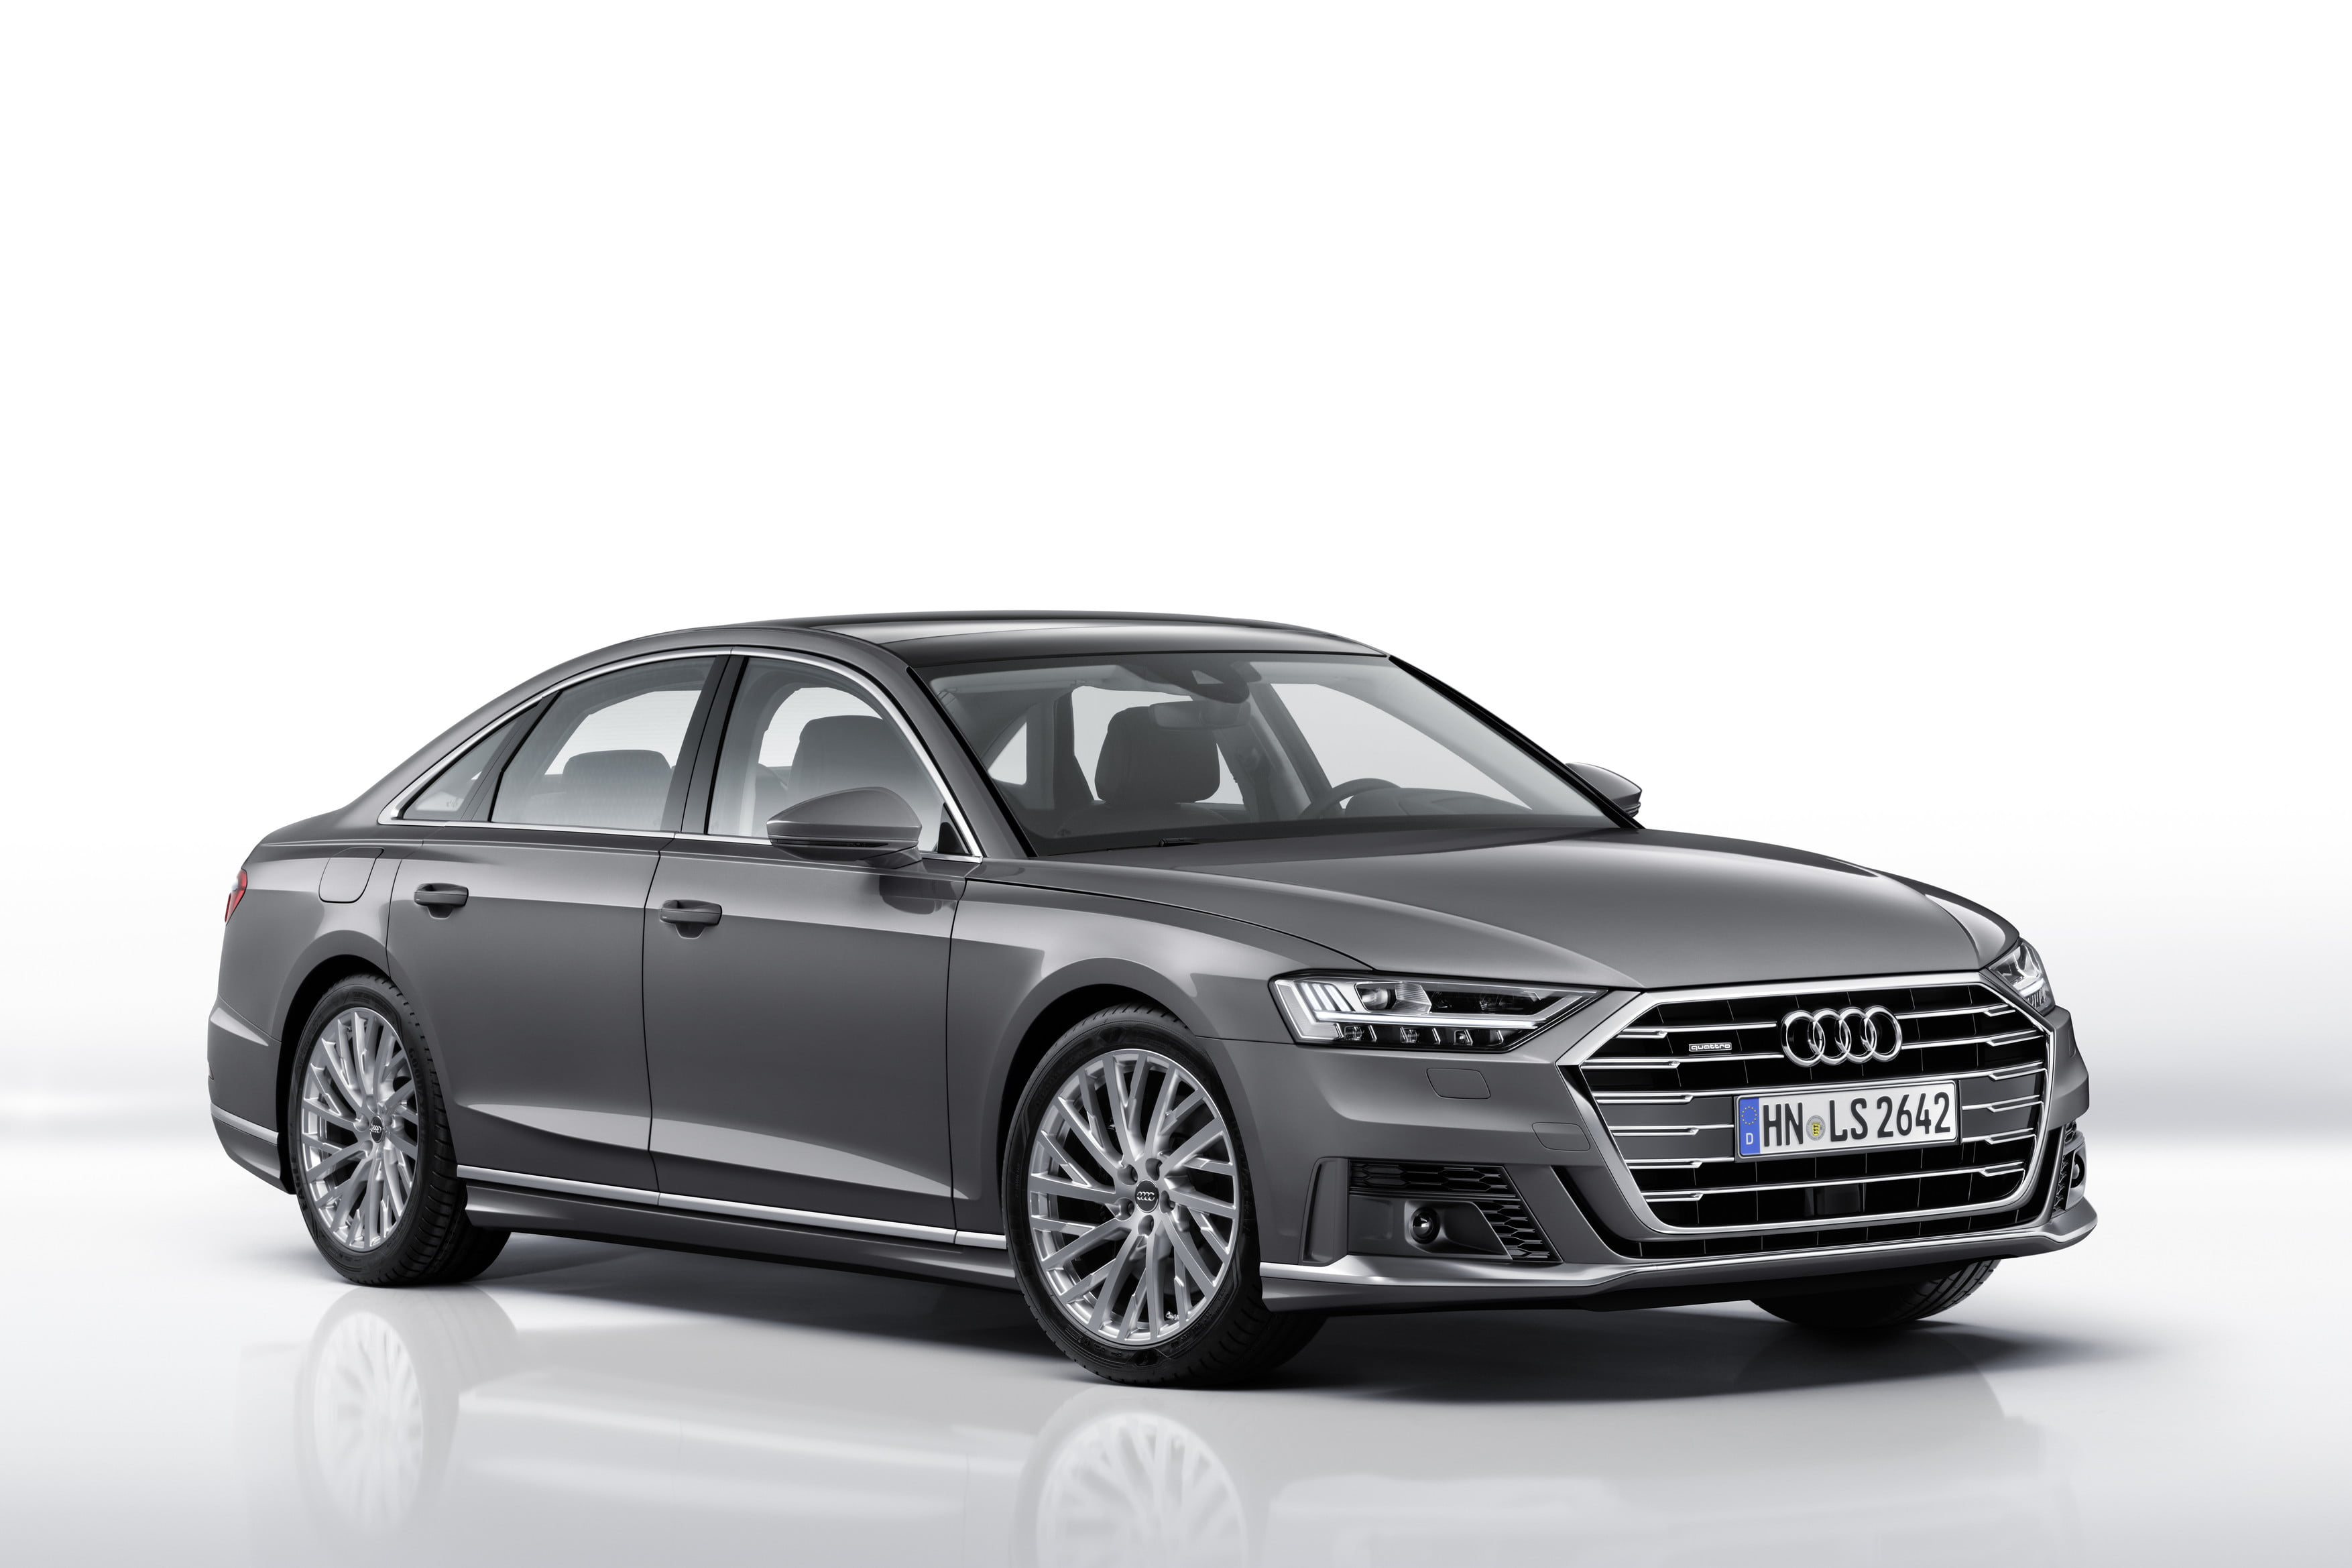 Audi A8 with driverless tech